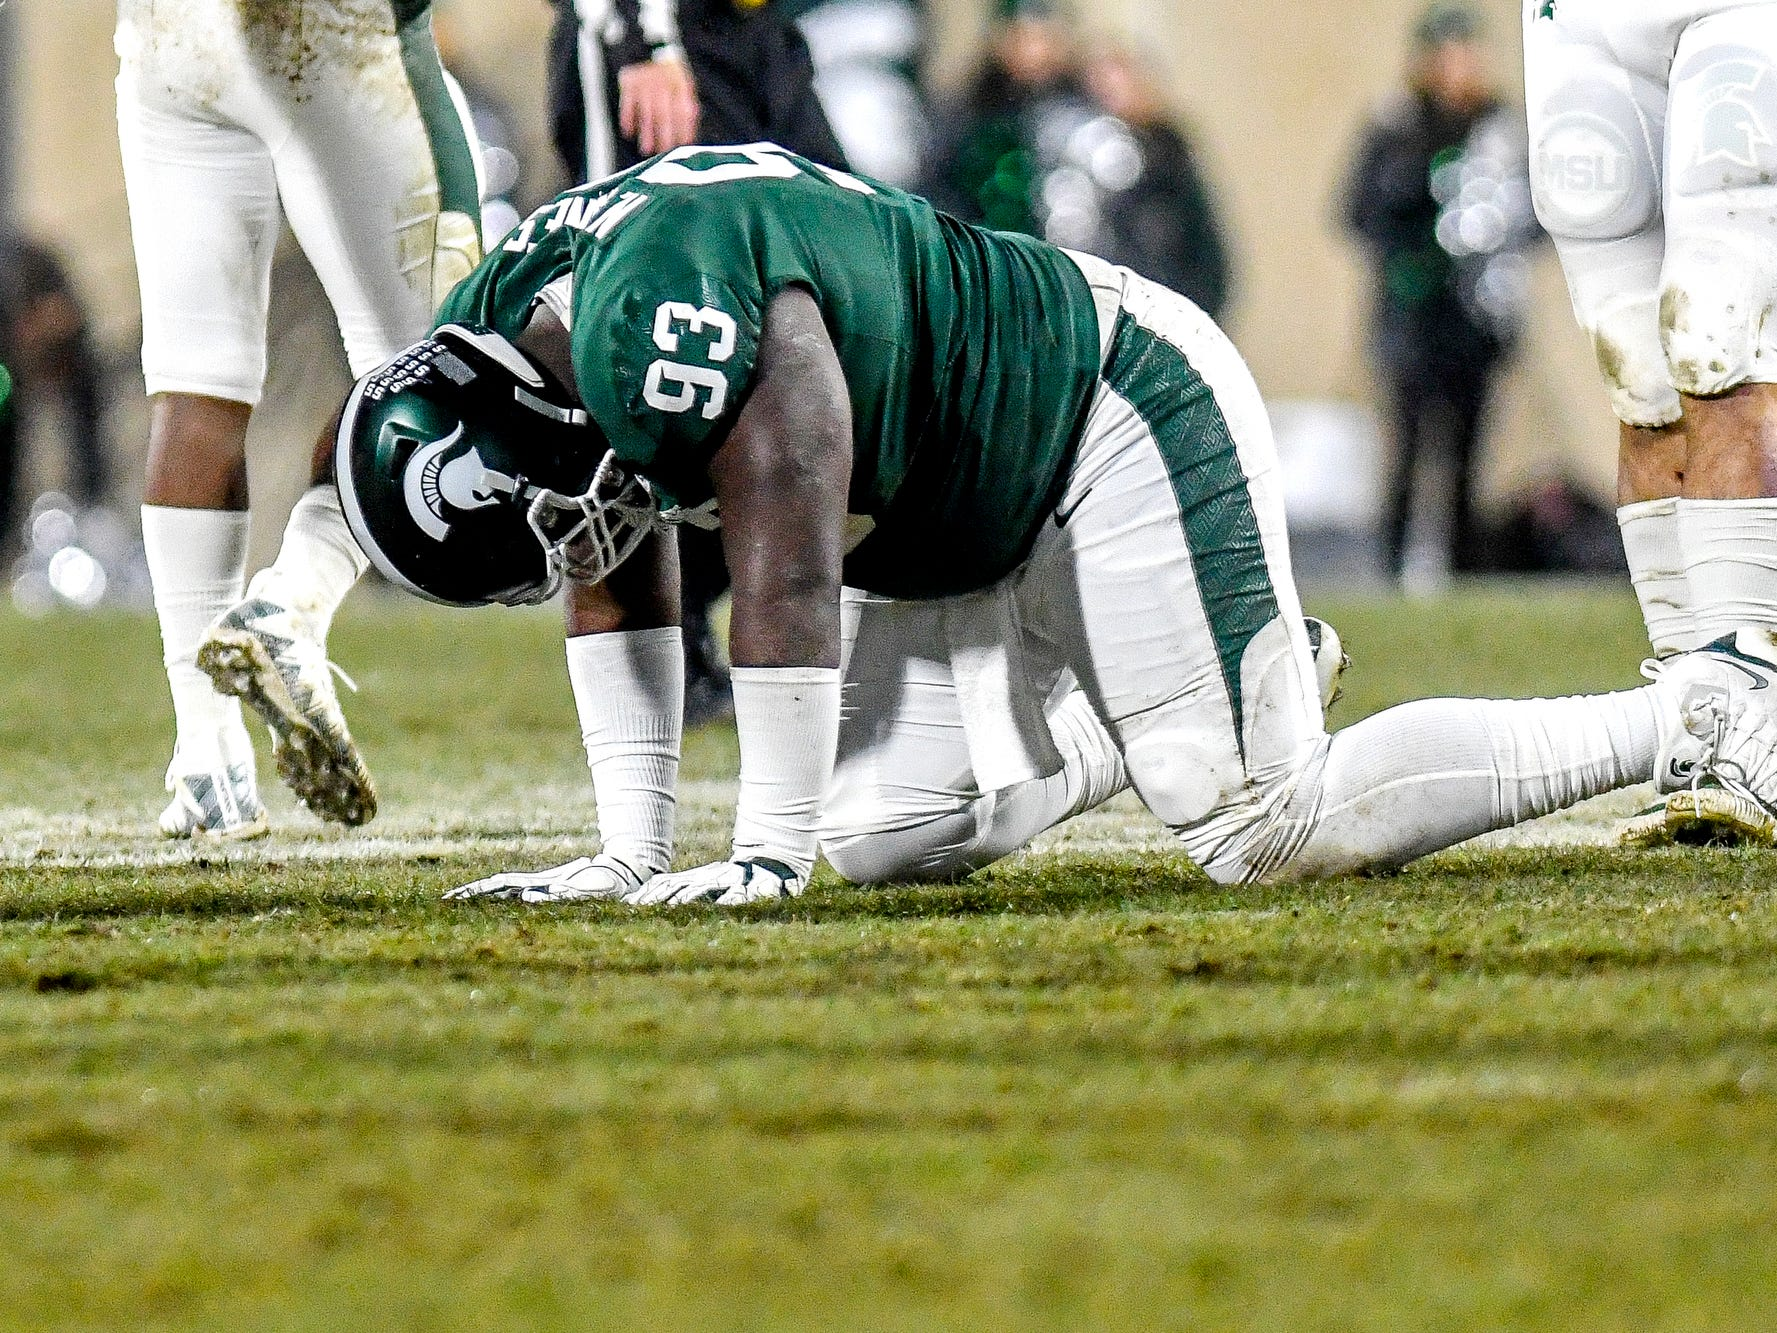 Michigan State's Naquan Jones is shaken up on a play during the second quarter on Saturday, Nov. 24, 2018, at Spartan Stadium in East Lansing.